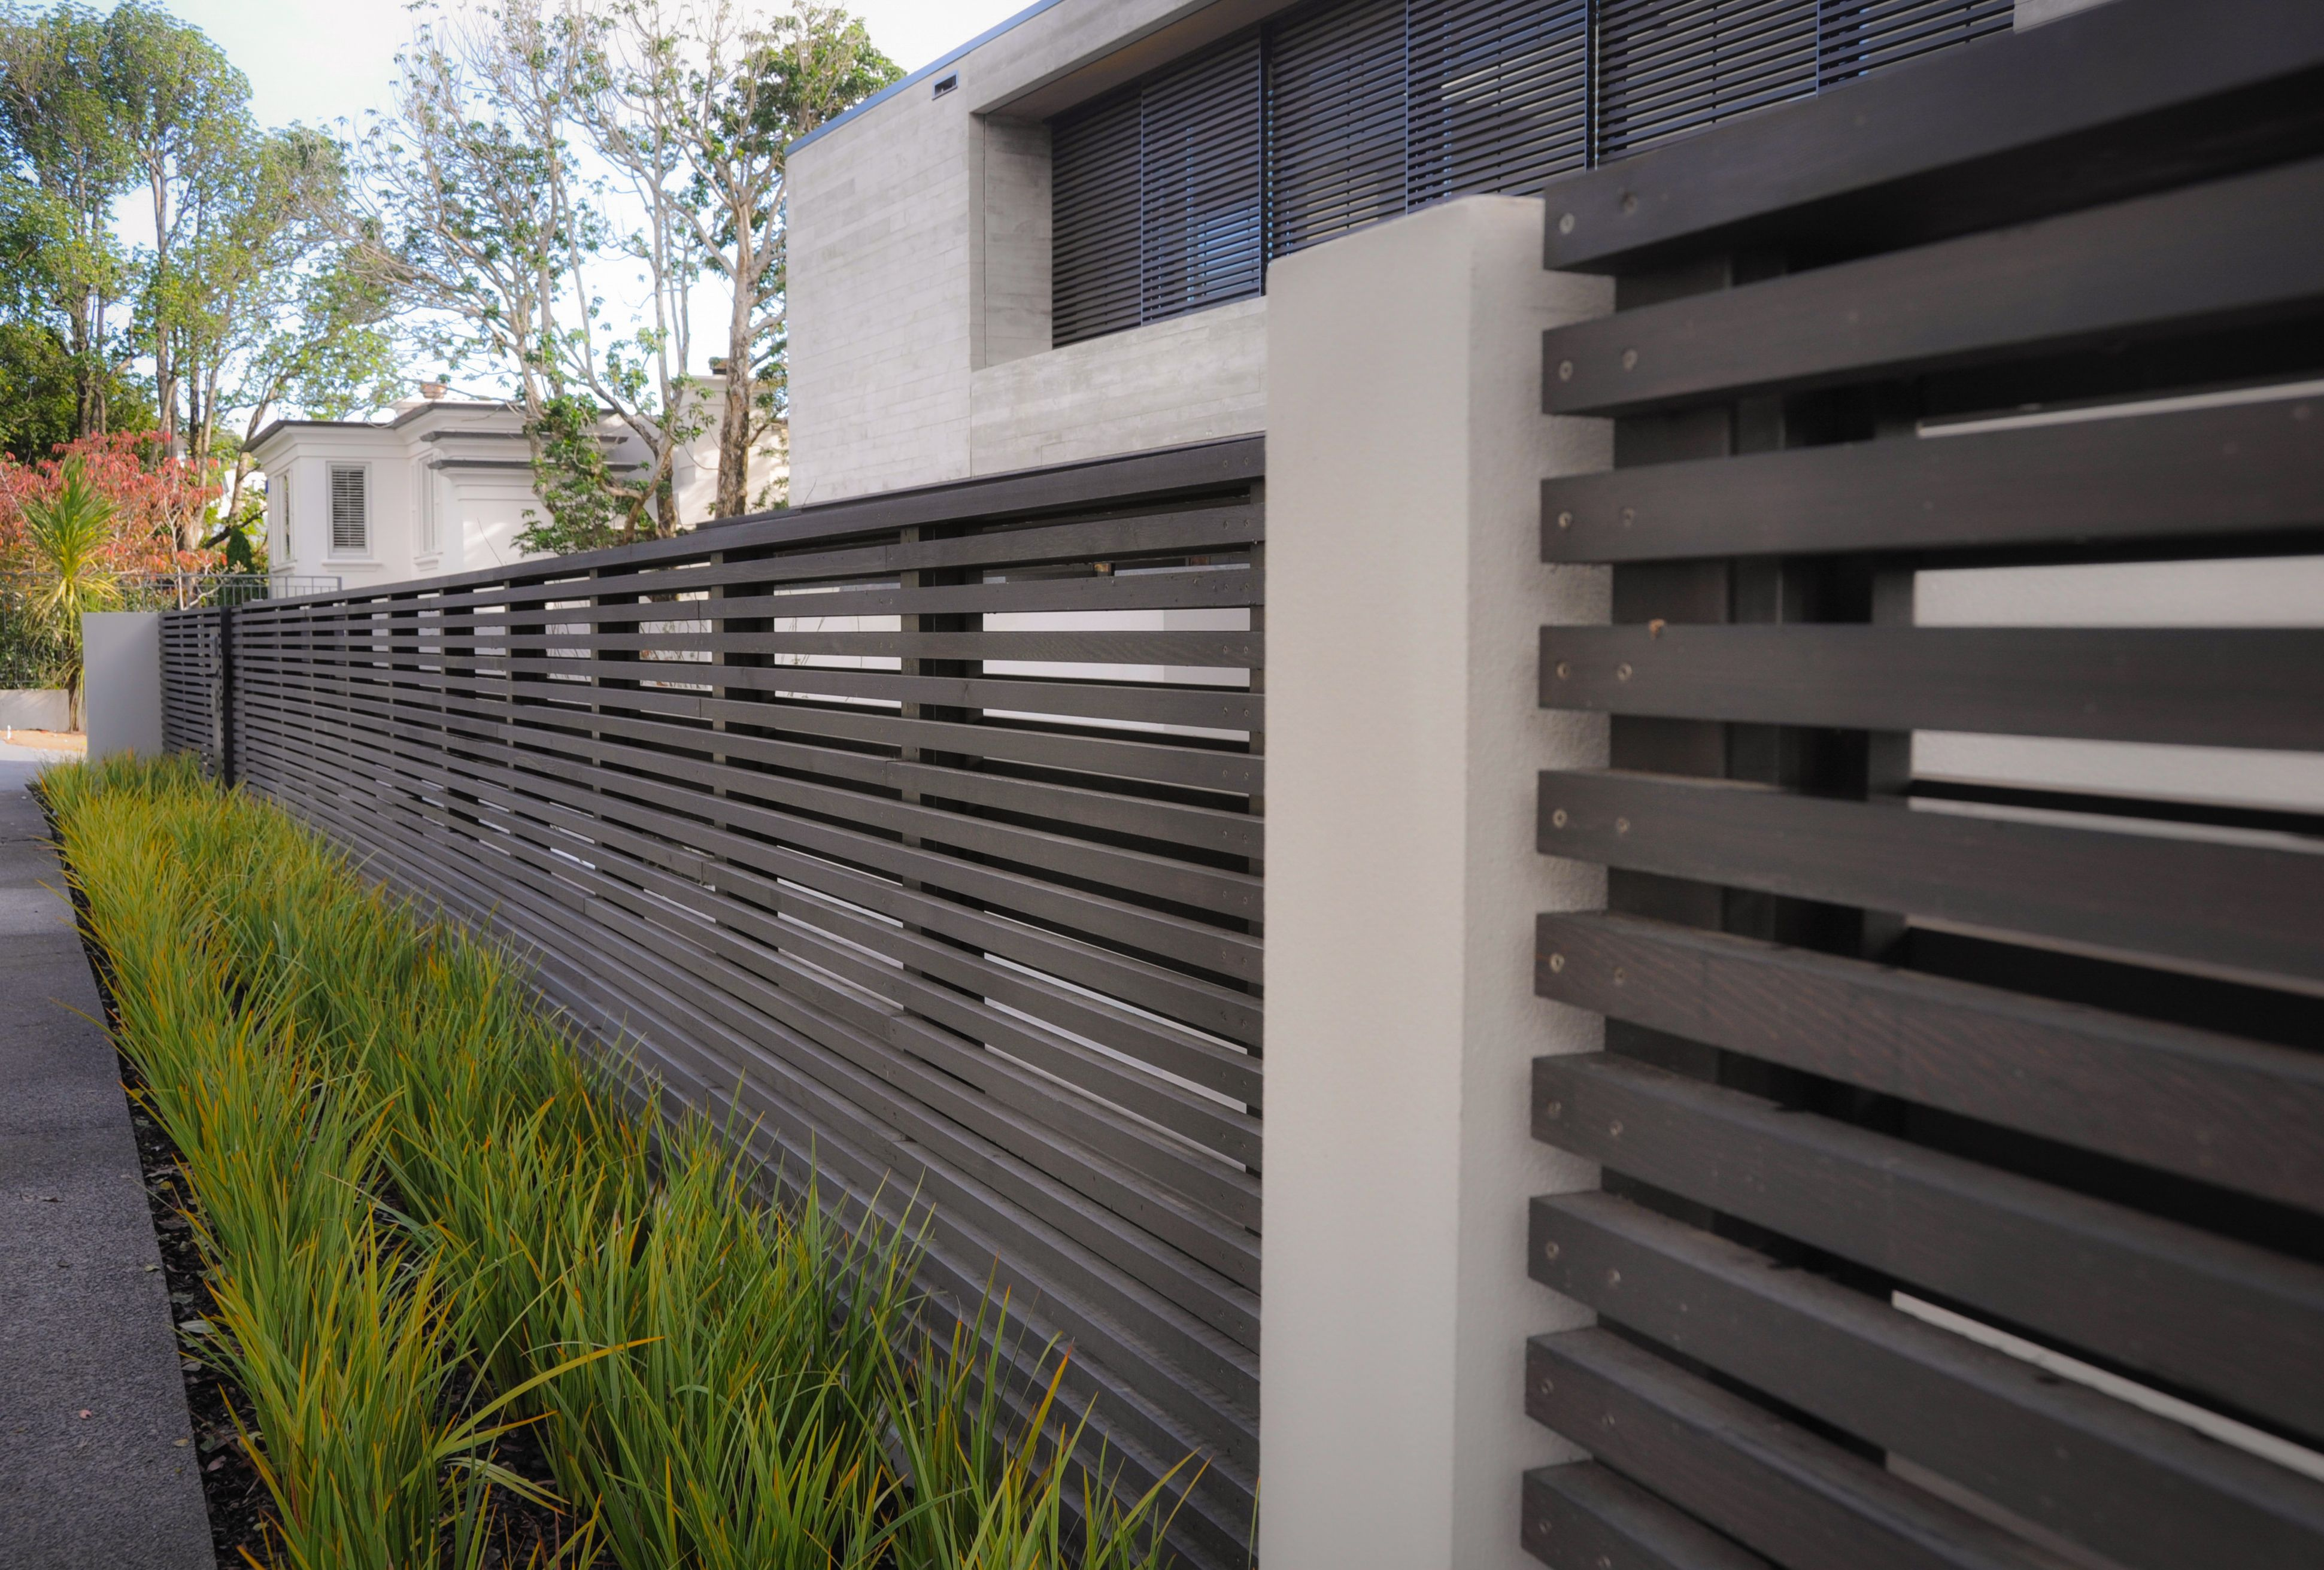 Dtail08 Fence Gate Custom Safety Contemporary Commercial Auckland Jpg 3882 2623 Modern Fence Design Fence Design Modern Fence